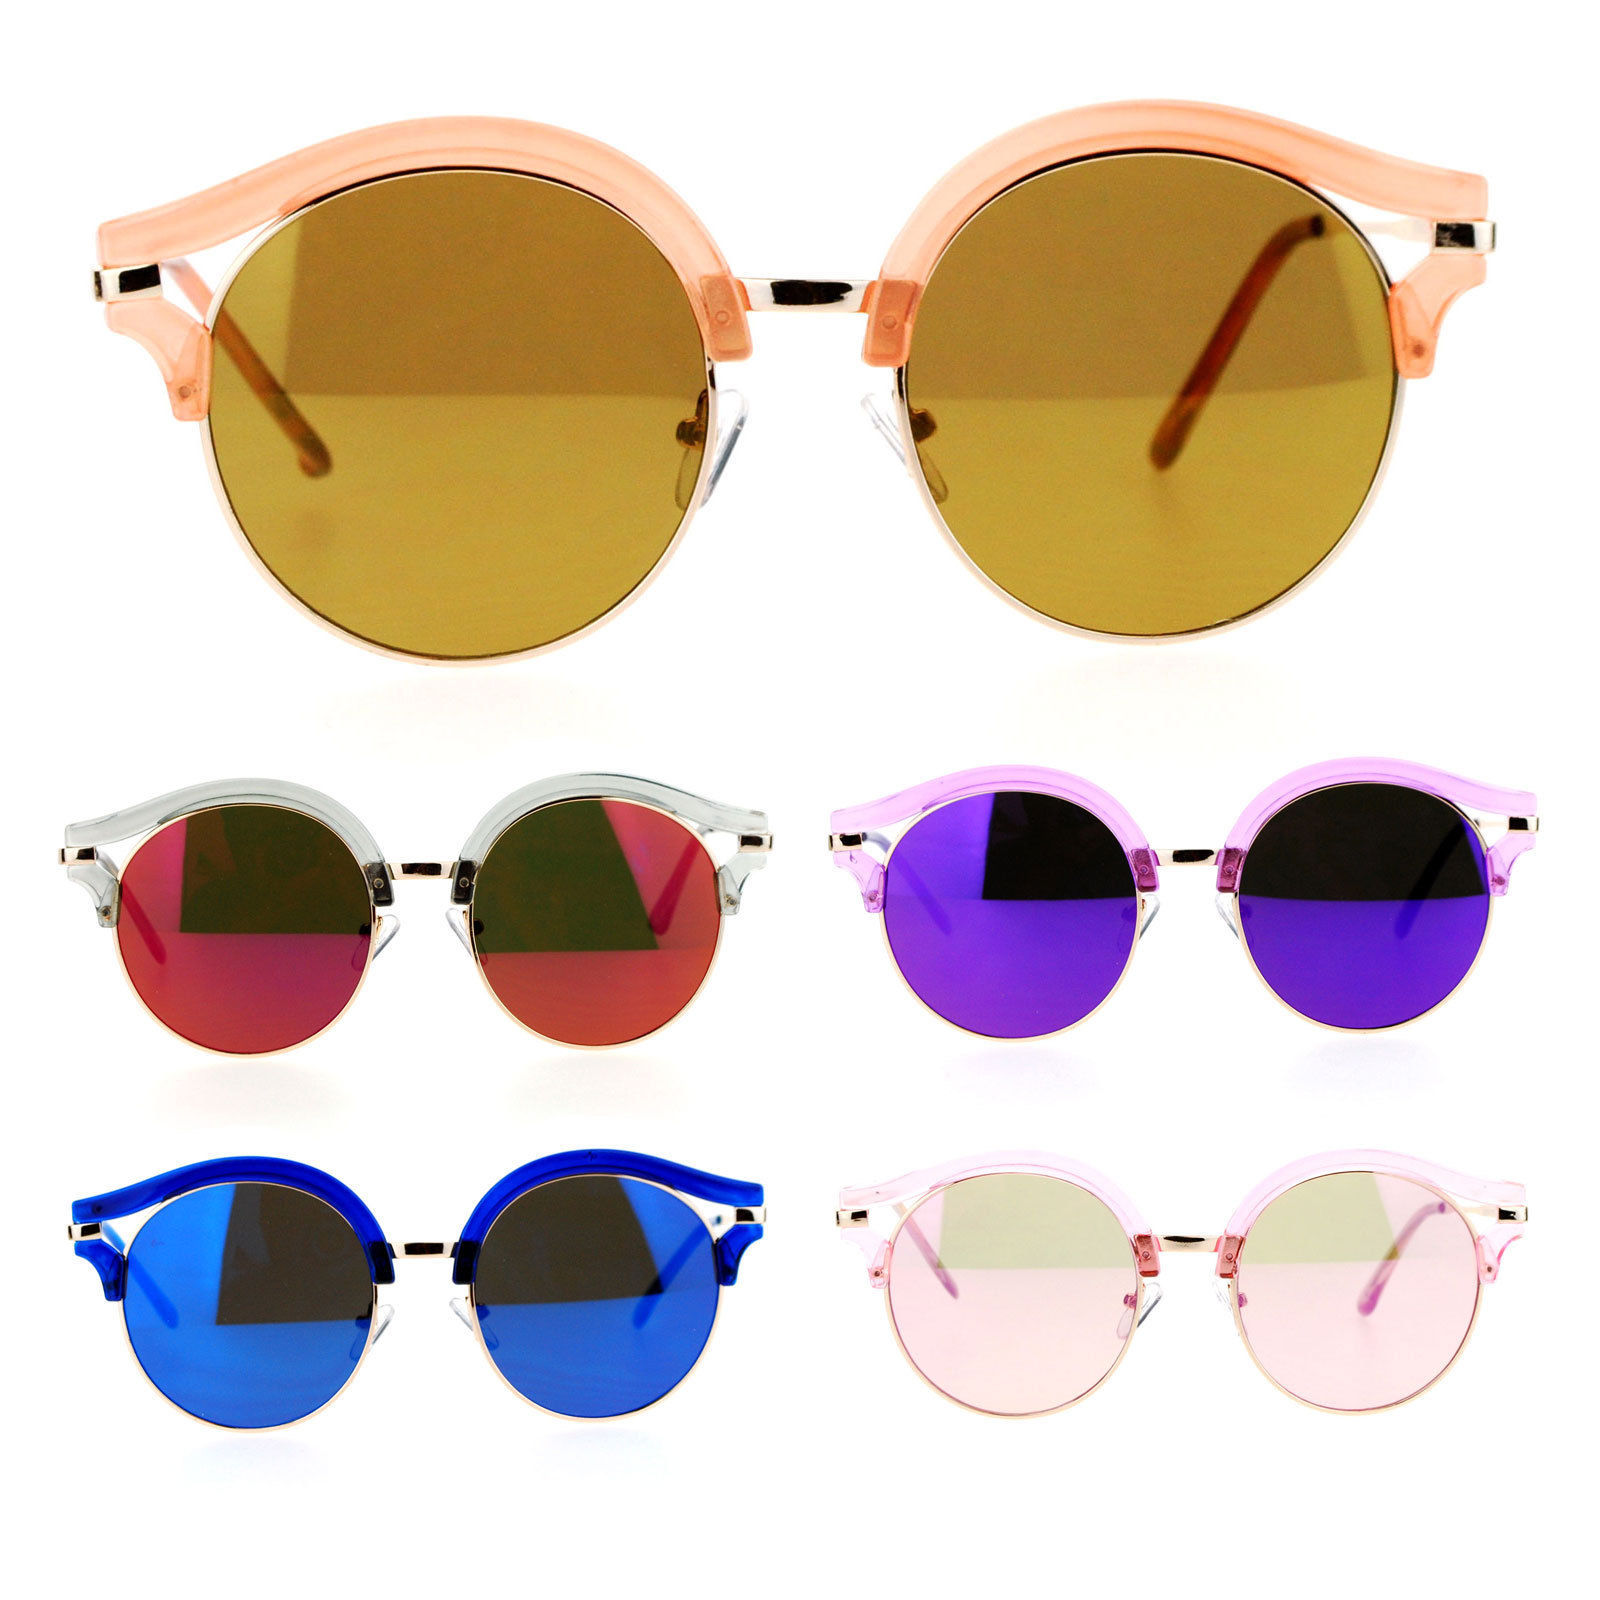 0508edd257a S l1600. S l1600. SA106 Retro Color Mirror Lens Round Circle Half Rim  Womens Sunglasses · SA106 Retro Color ...